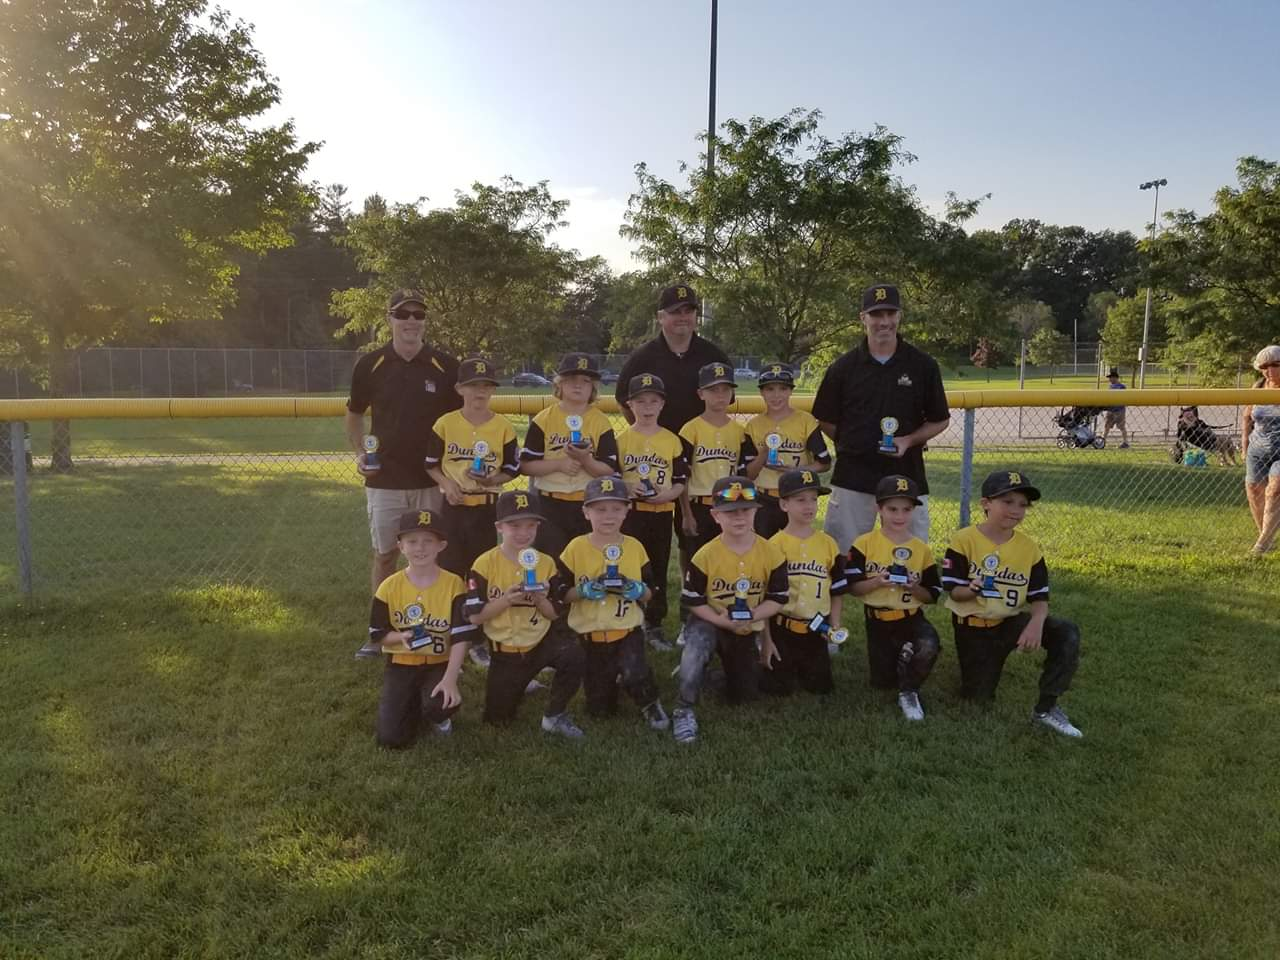 T-ball All-stars Thank You!